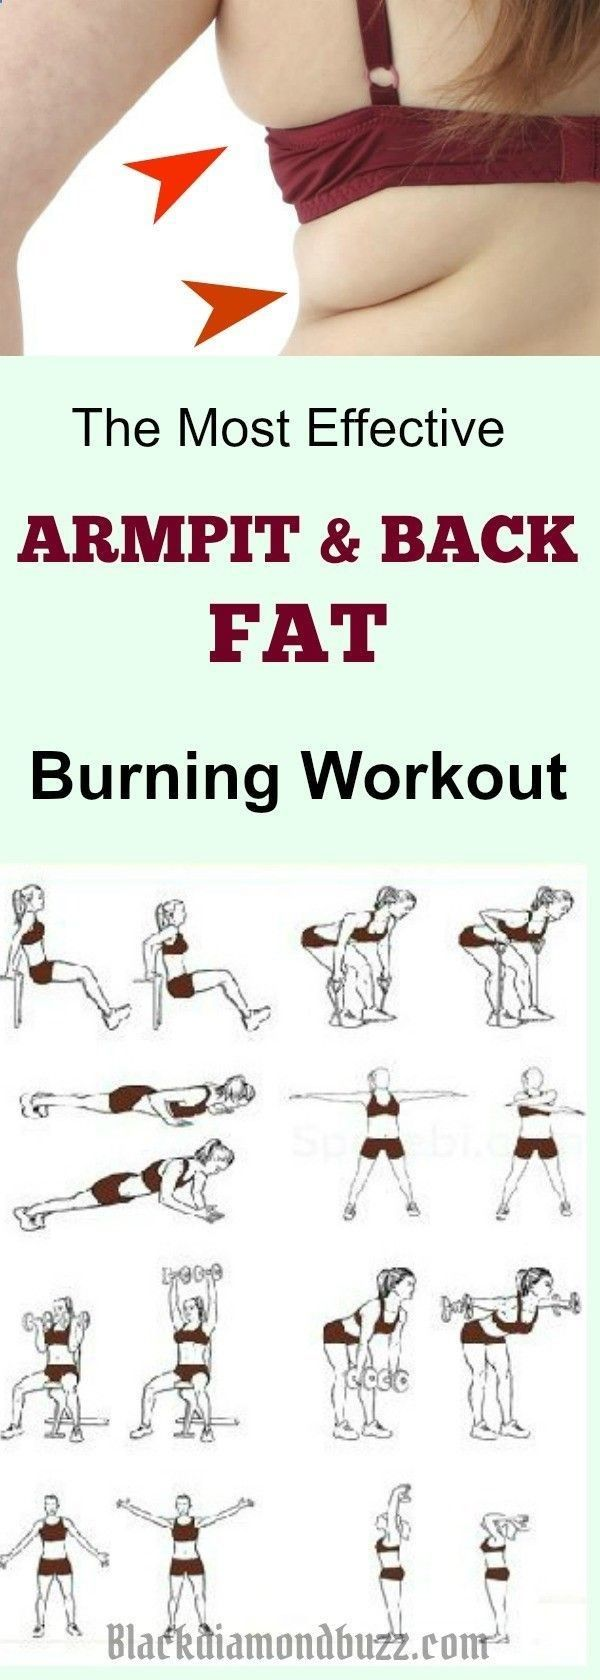 Belly Fat Burning, Belly Workout Plans, exercise ideas, belly fat loss, weight loss, easy and simple stretch exercises. Exercise Routines, Exercise Motivation, Exercise Ideas for beginners as well as experienced. Defeated By Pain, Frustrated With Belly Fat, And Struggling To Feel Energized Every Day. Click and find out.